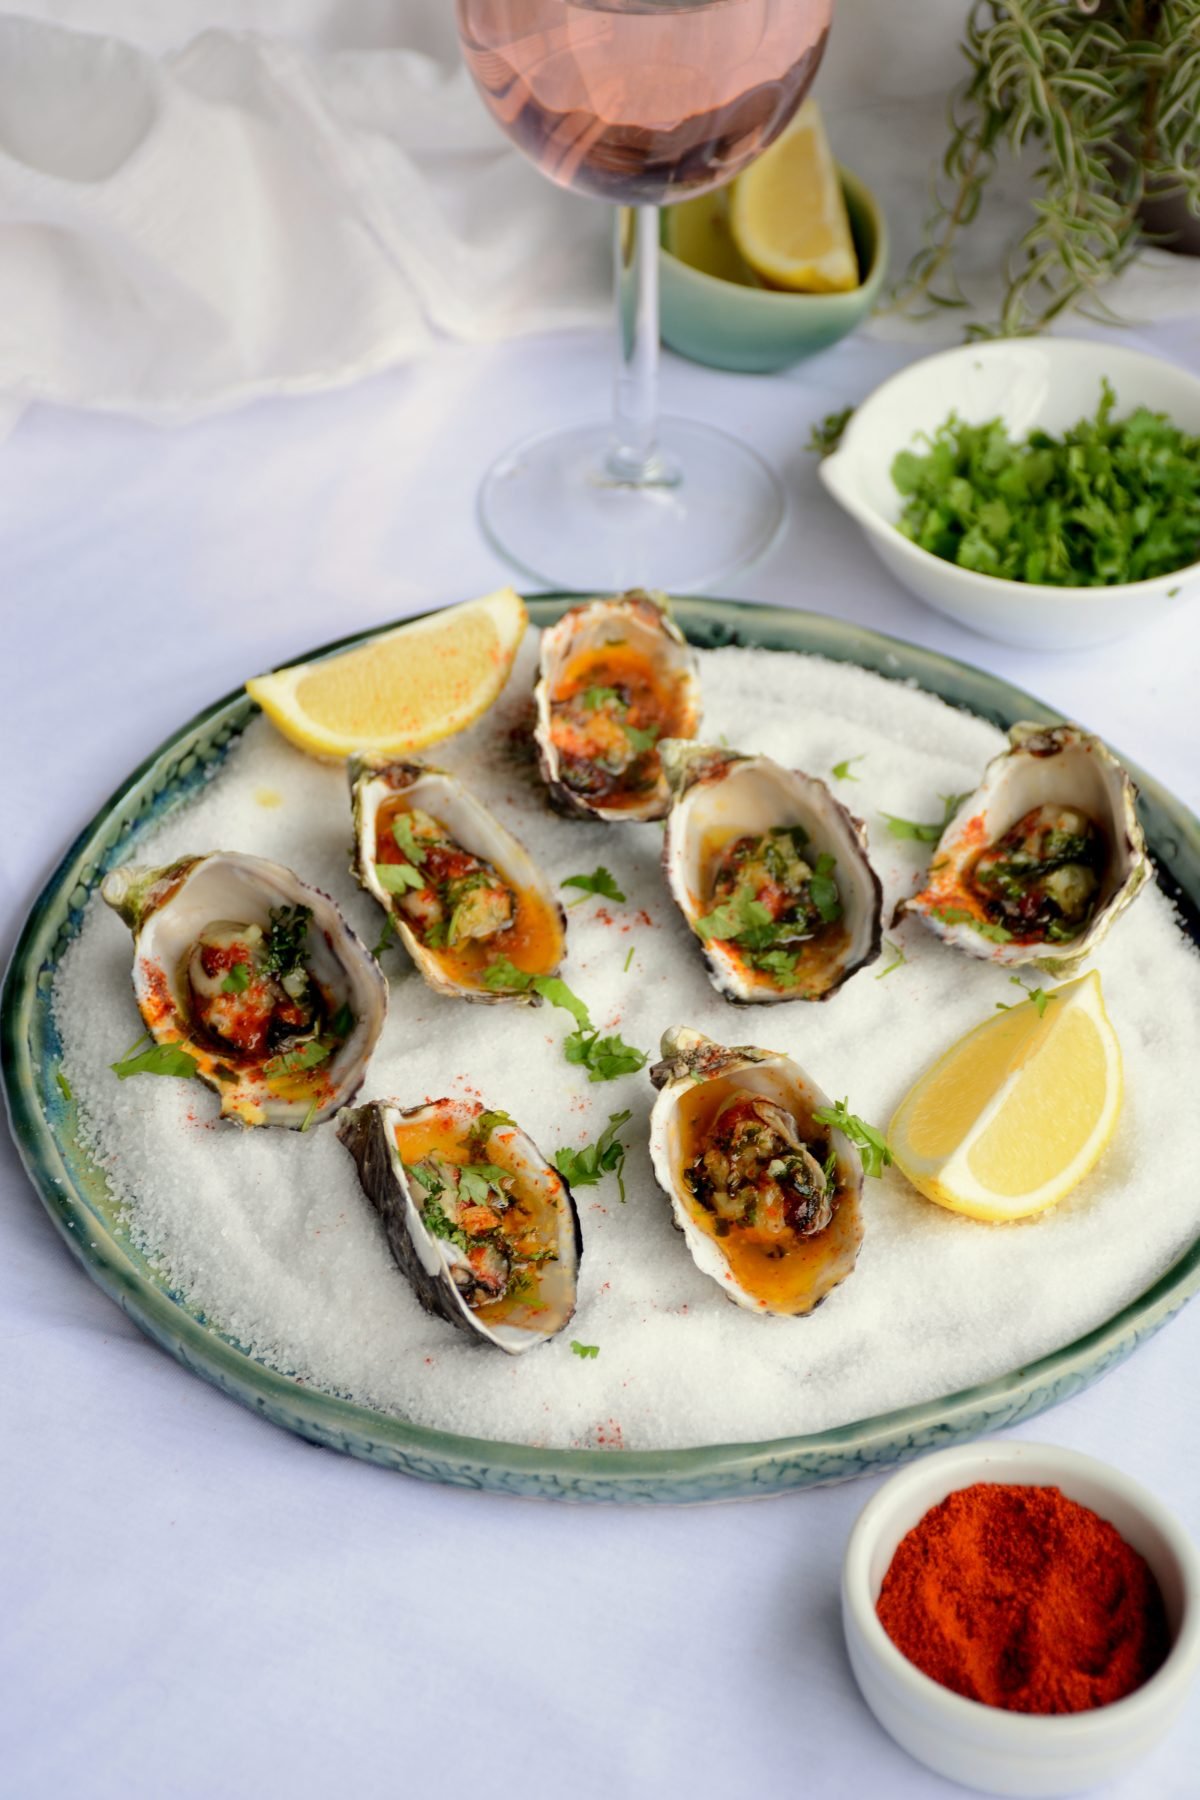 Baked Oysters with Garlic, Curry Leaf and Kashmiri Chilli - Soft, plump and juicy oysters are oven baked with a garlic and curry leaf butter emulsion, coriander leaves and Kashmiri chilli powder - thespiceadventuress.com